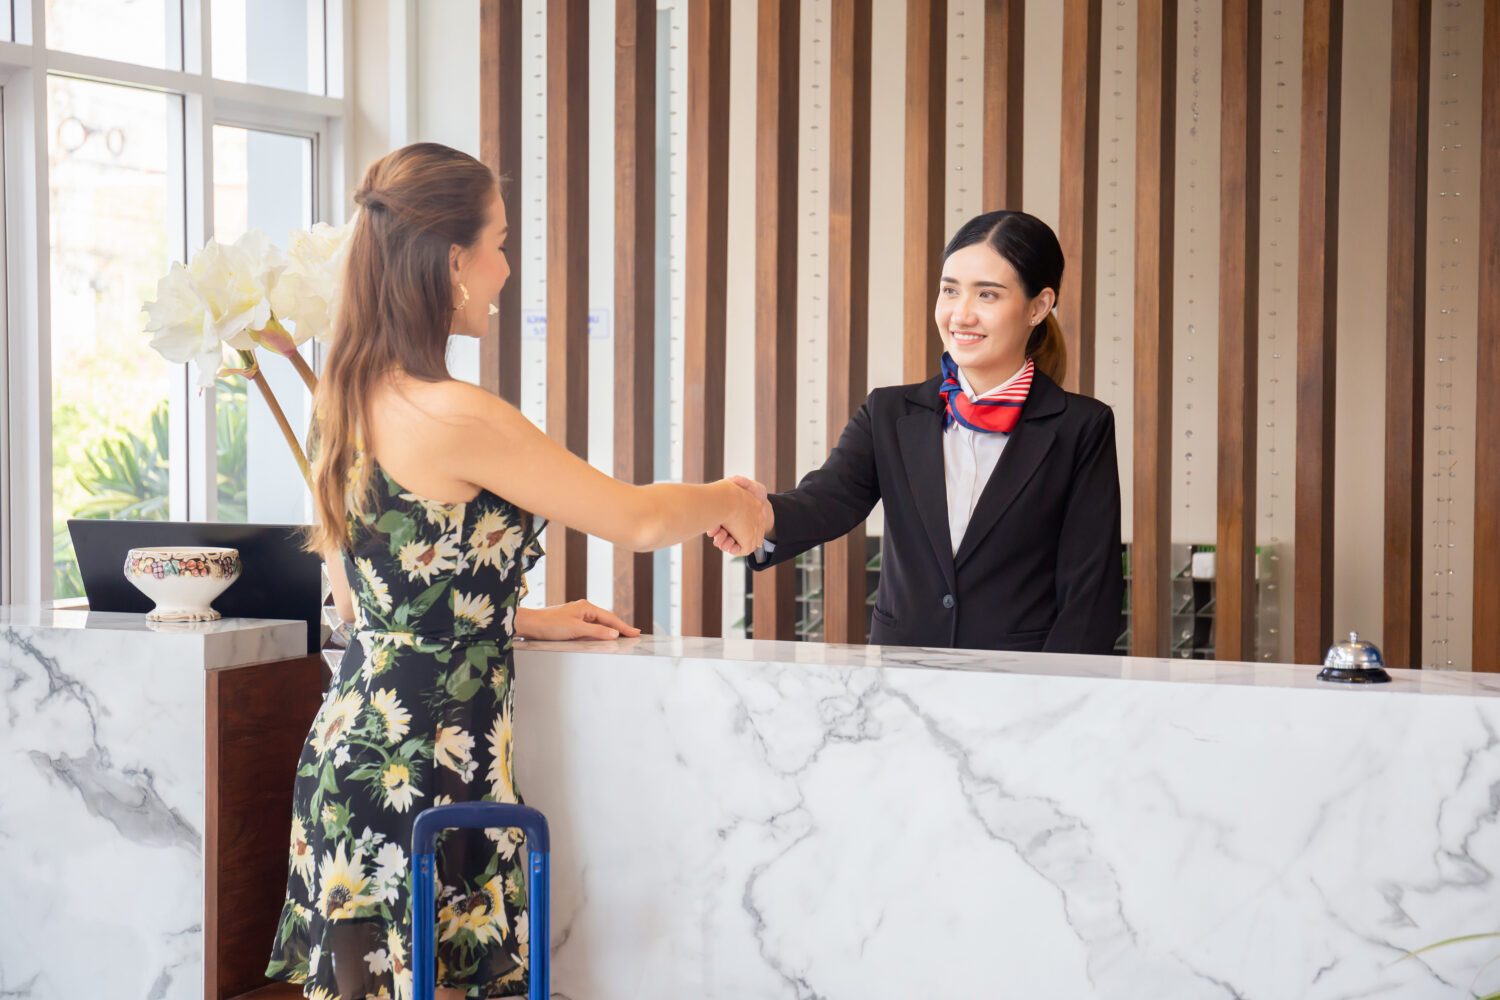 happy guest shaking hand with front desk receptionist